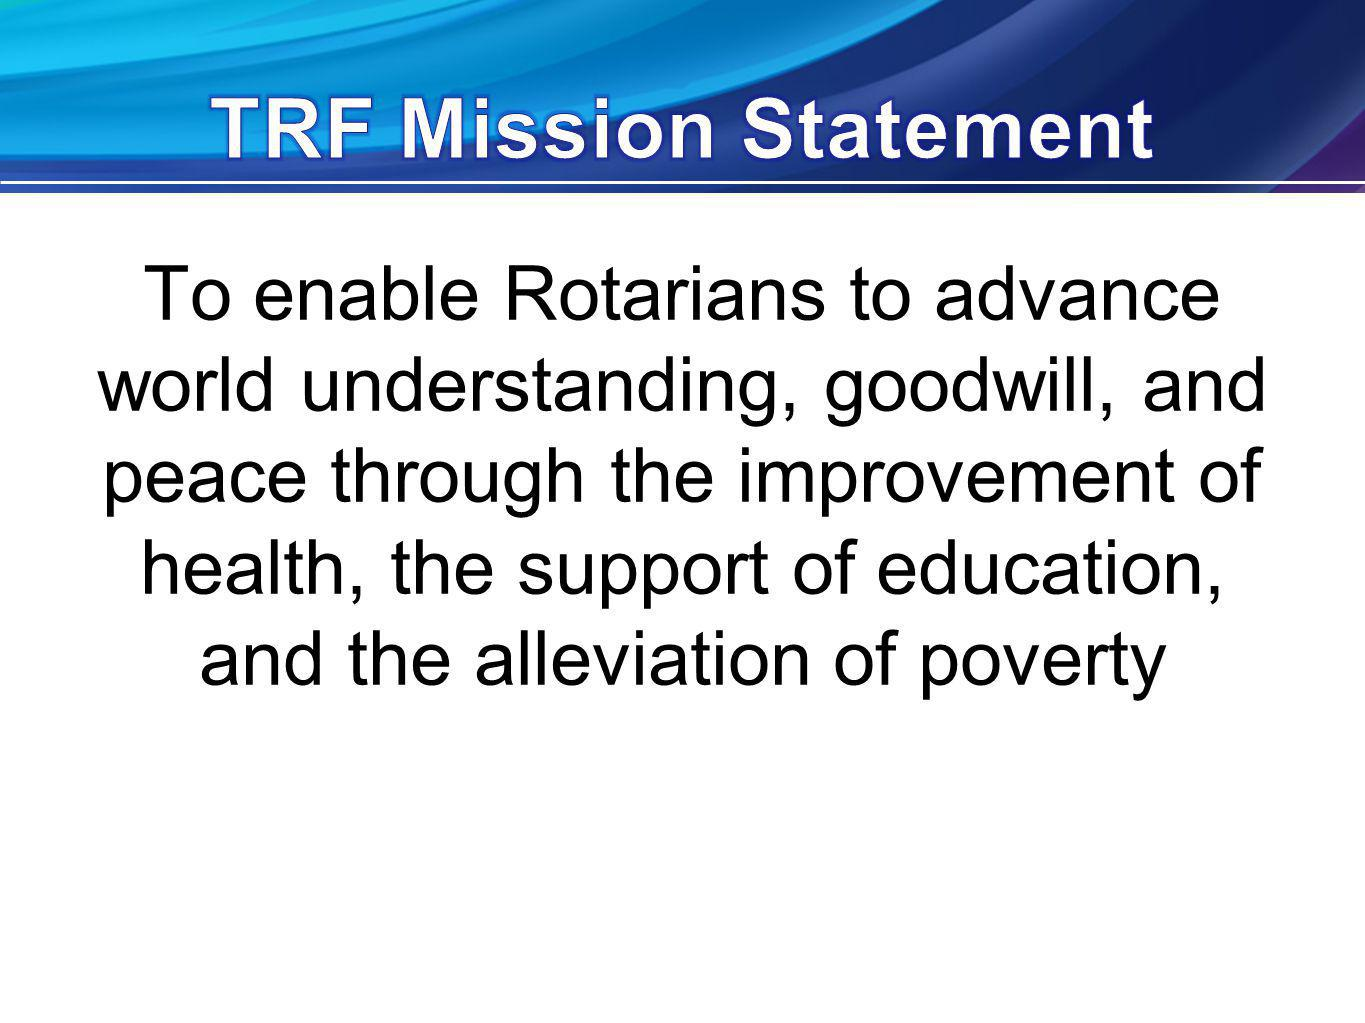 To enable Rotarians to advance world understanding, goodwill, and peace through the improvement of health, the support of education, and the alleviation of poverty